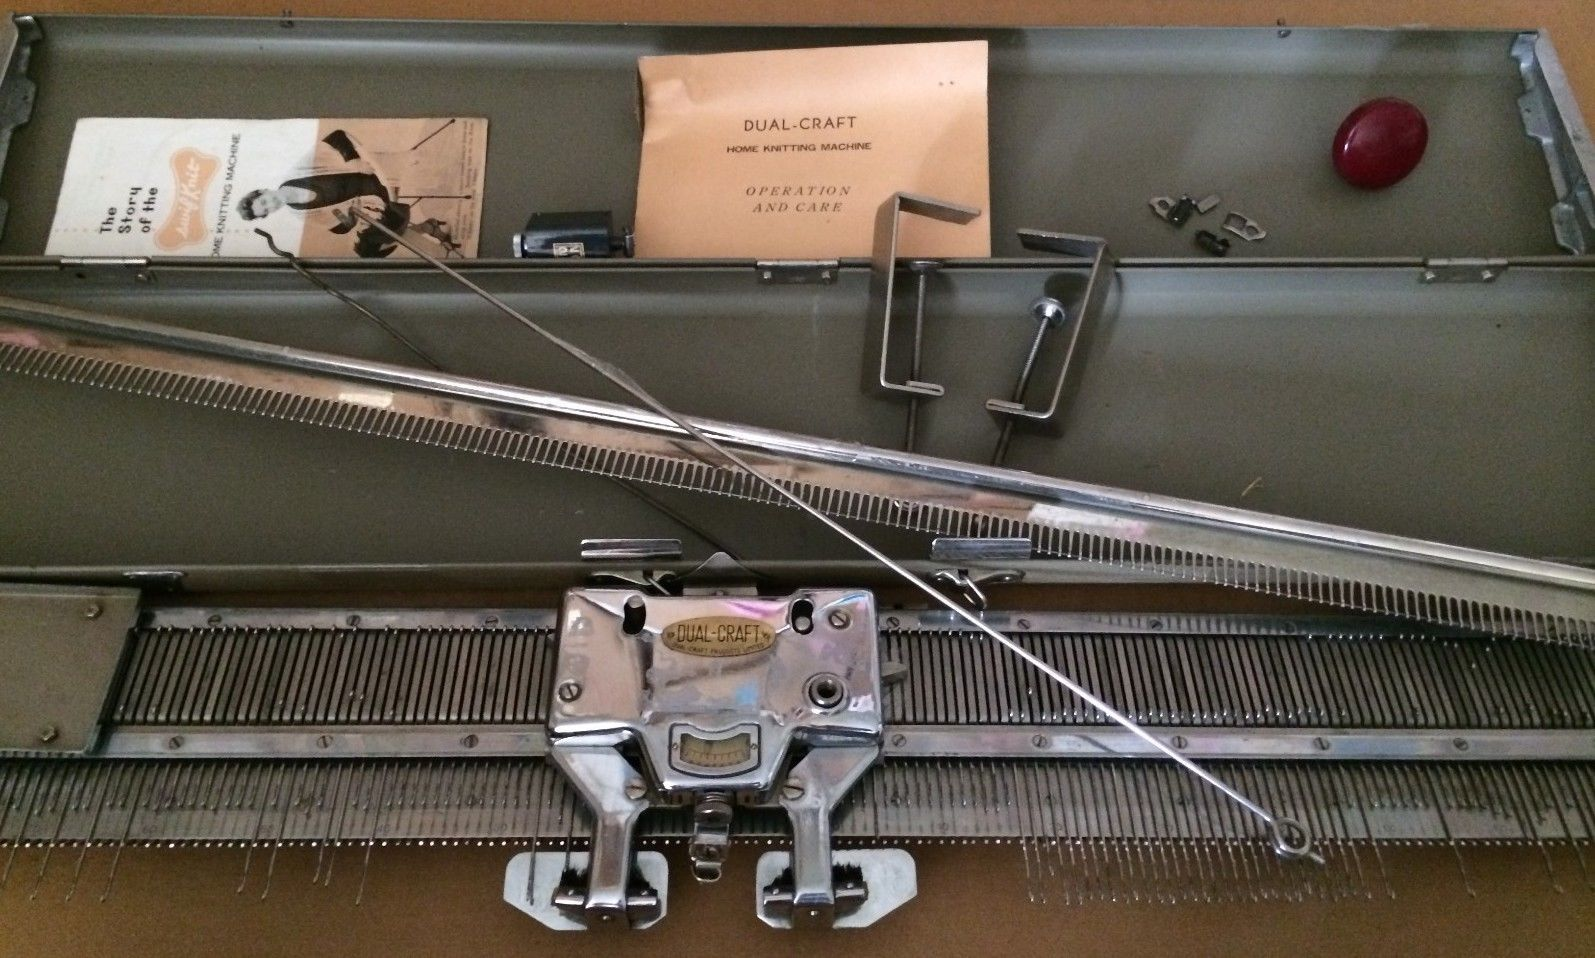 Vintage Knitting Machine : Details about vintage antique dual craft home knitting